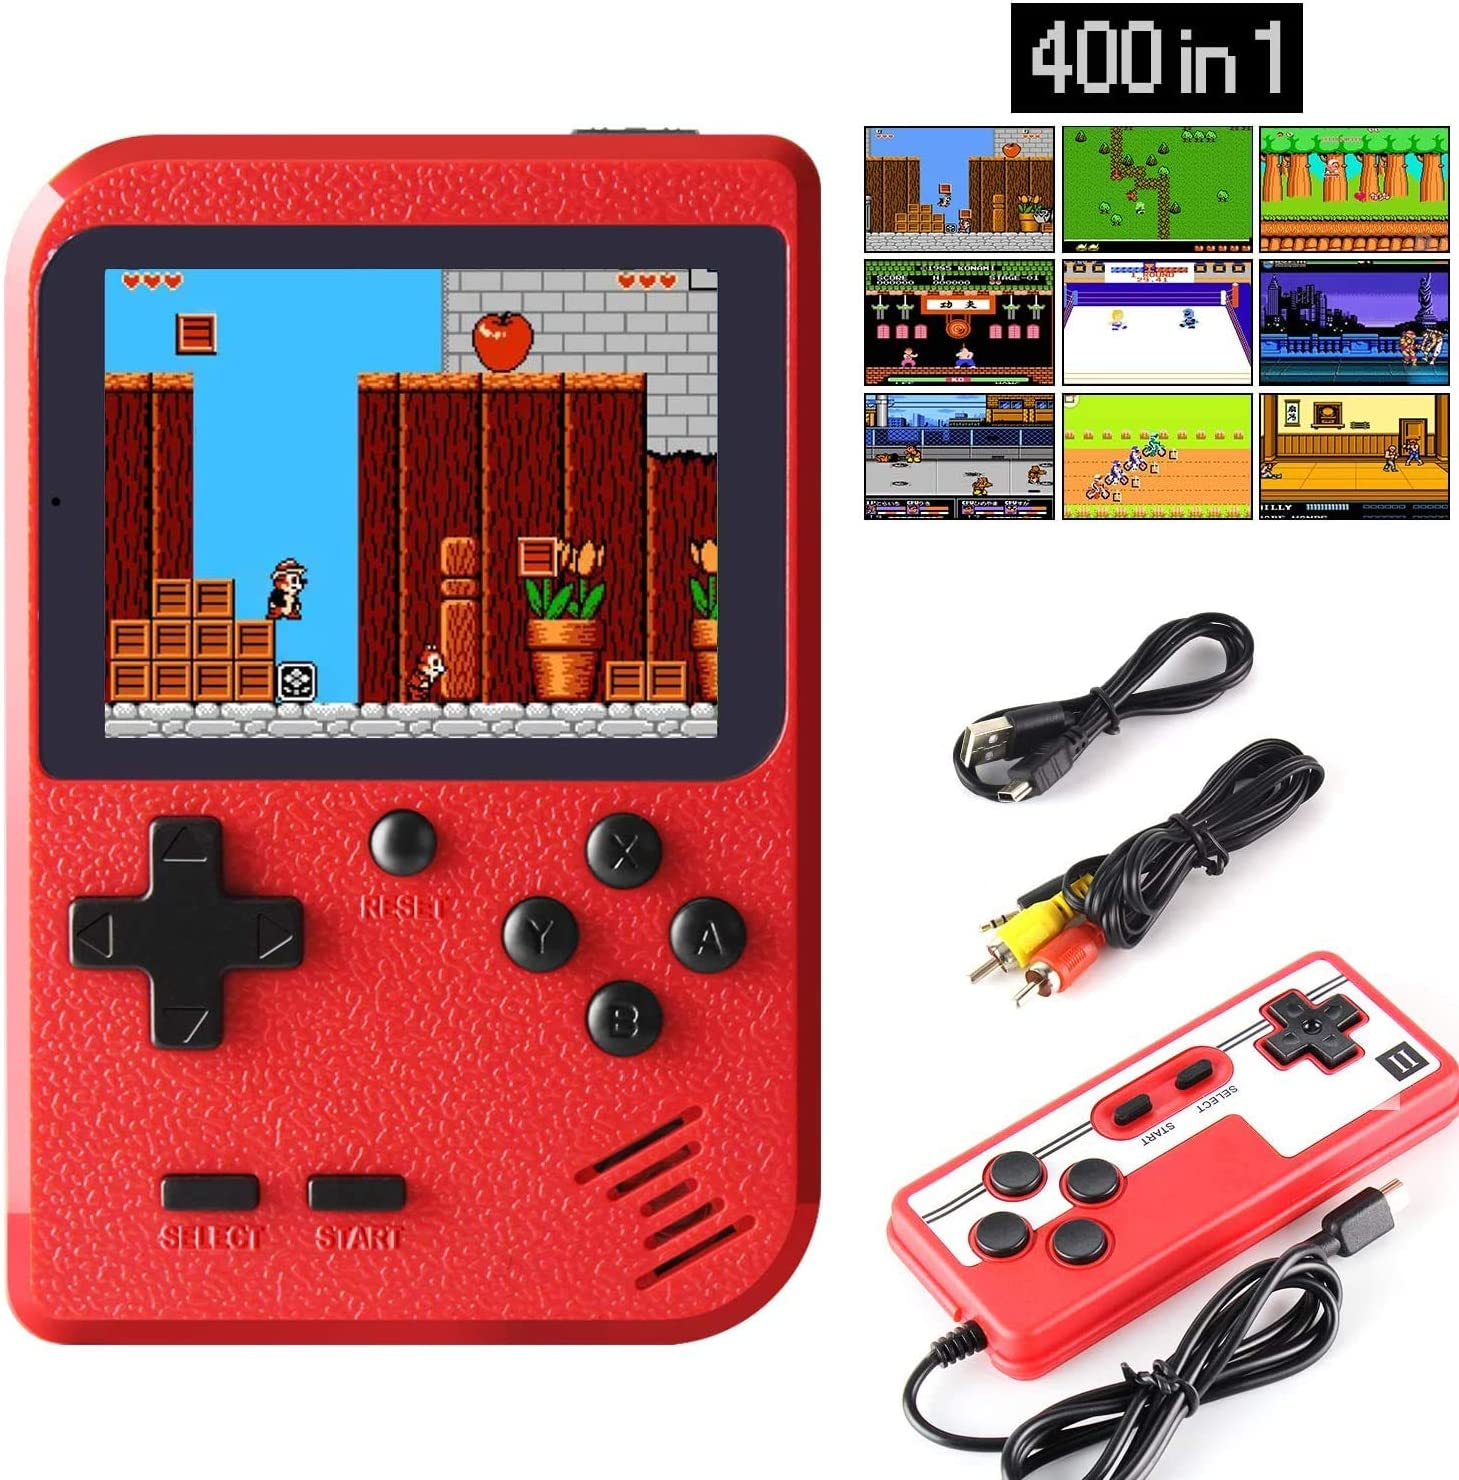 """Handheld Game Console Retro Handheld Game Console Player with 400 Classical FC Games 3 """" Color Screen Game boy Games Support for Connecting TV & Two Players 1020mAh Battery for Kids &Adult (Red): Toys & Games"""